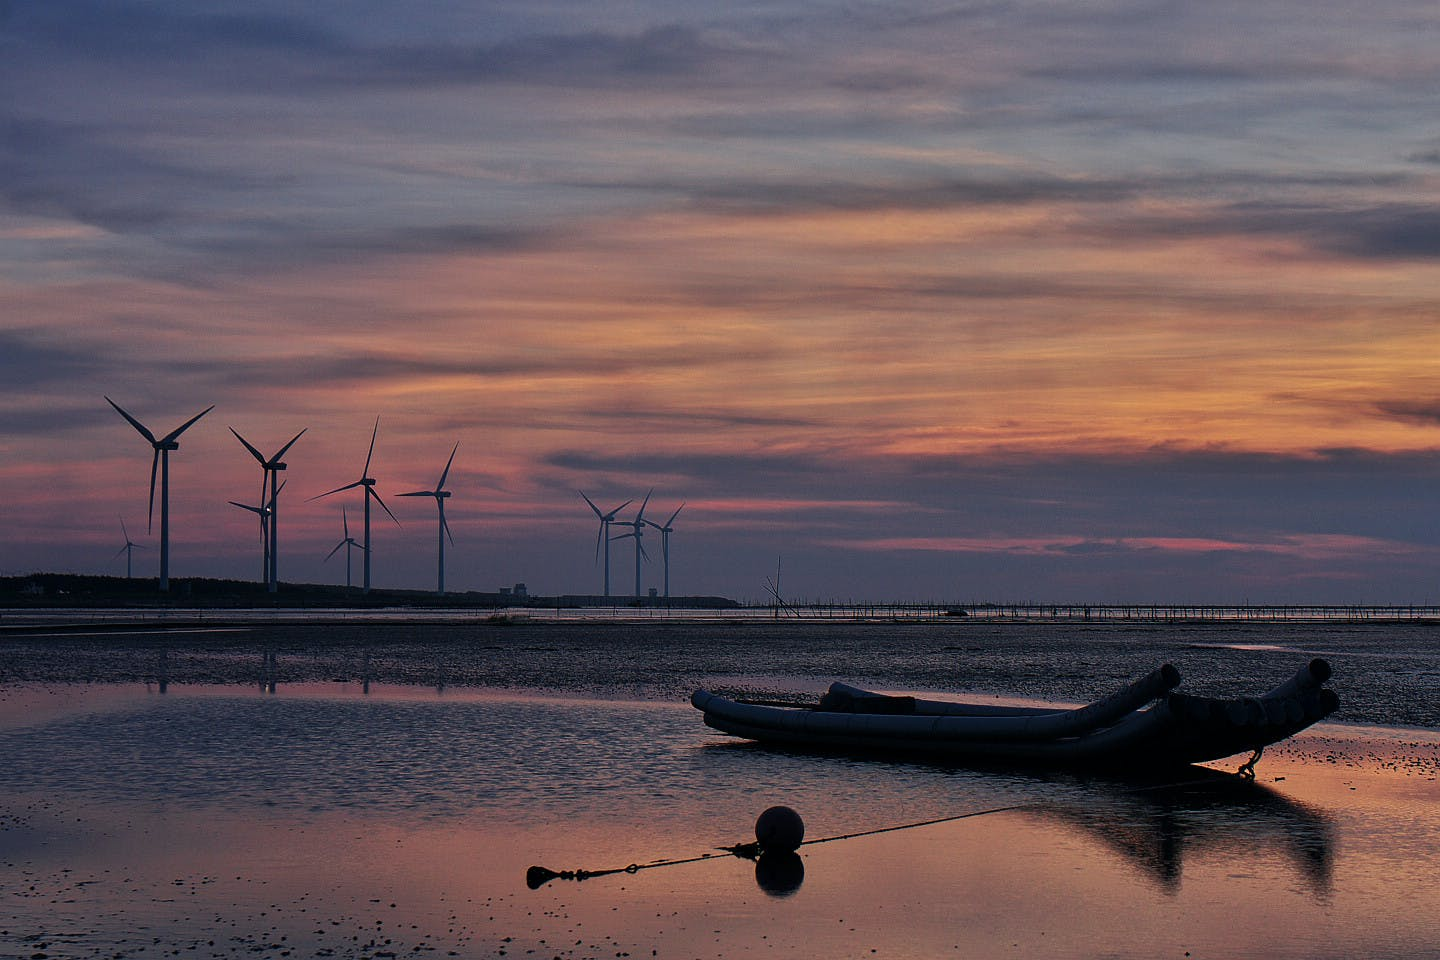 Windmills Behind Canoe Boat during Sunset